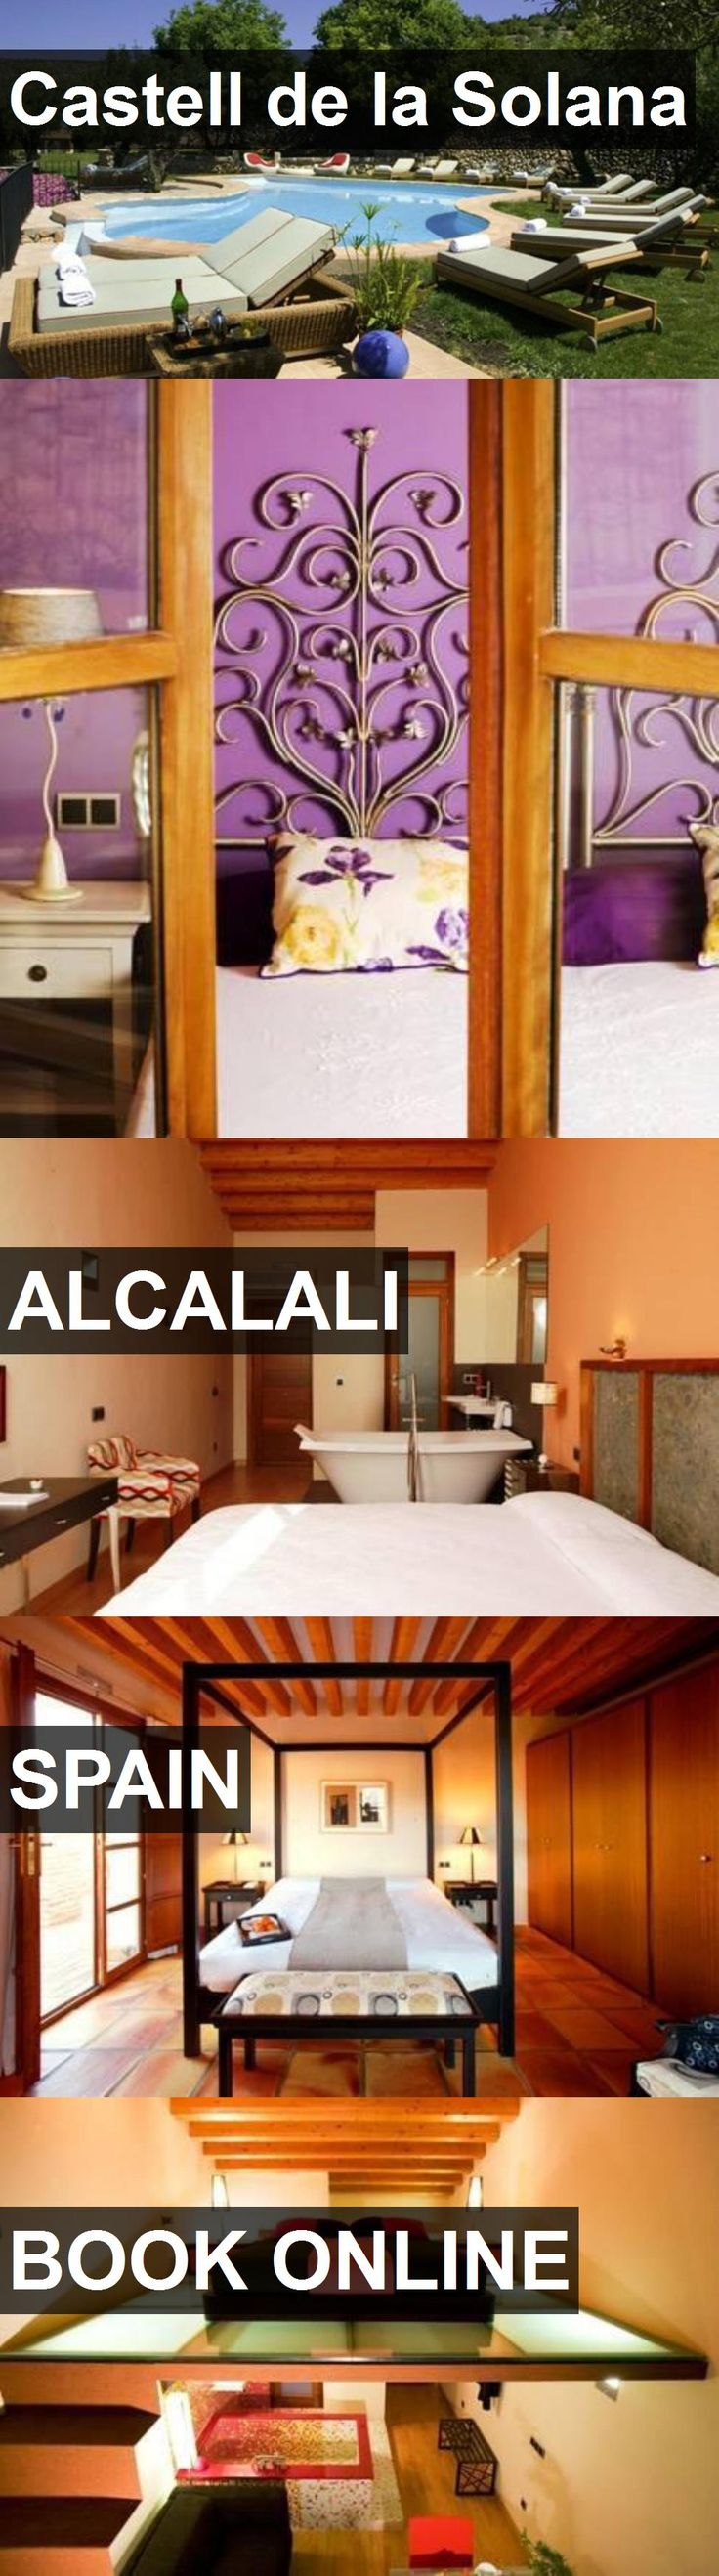 Hotel Castell de la Solana in Alcalali, Spain. For more information, photos, reviews and best prices please follow the link. #Spain #Alcalali #travel #vacation #hotel